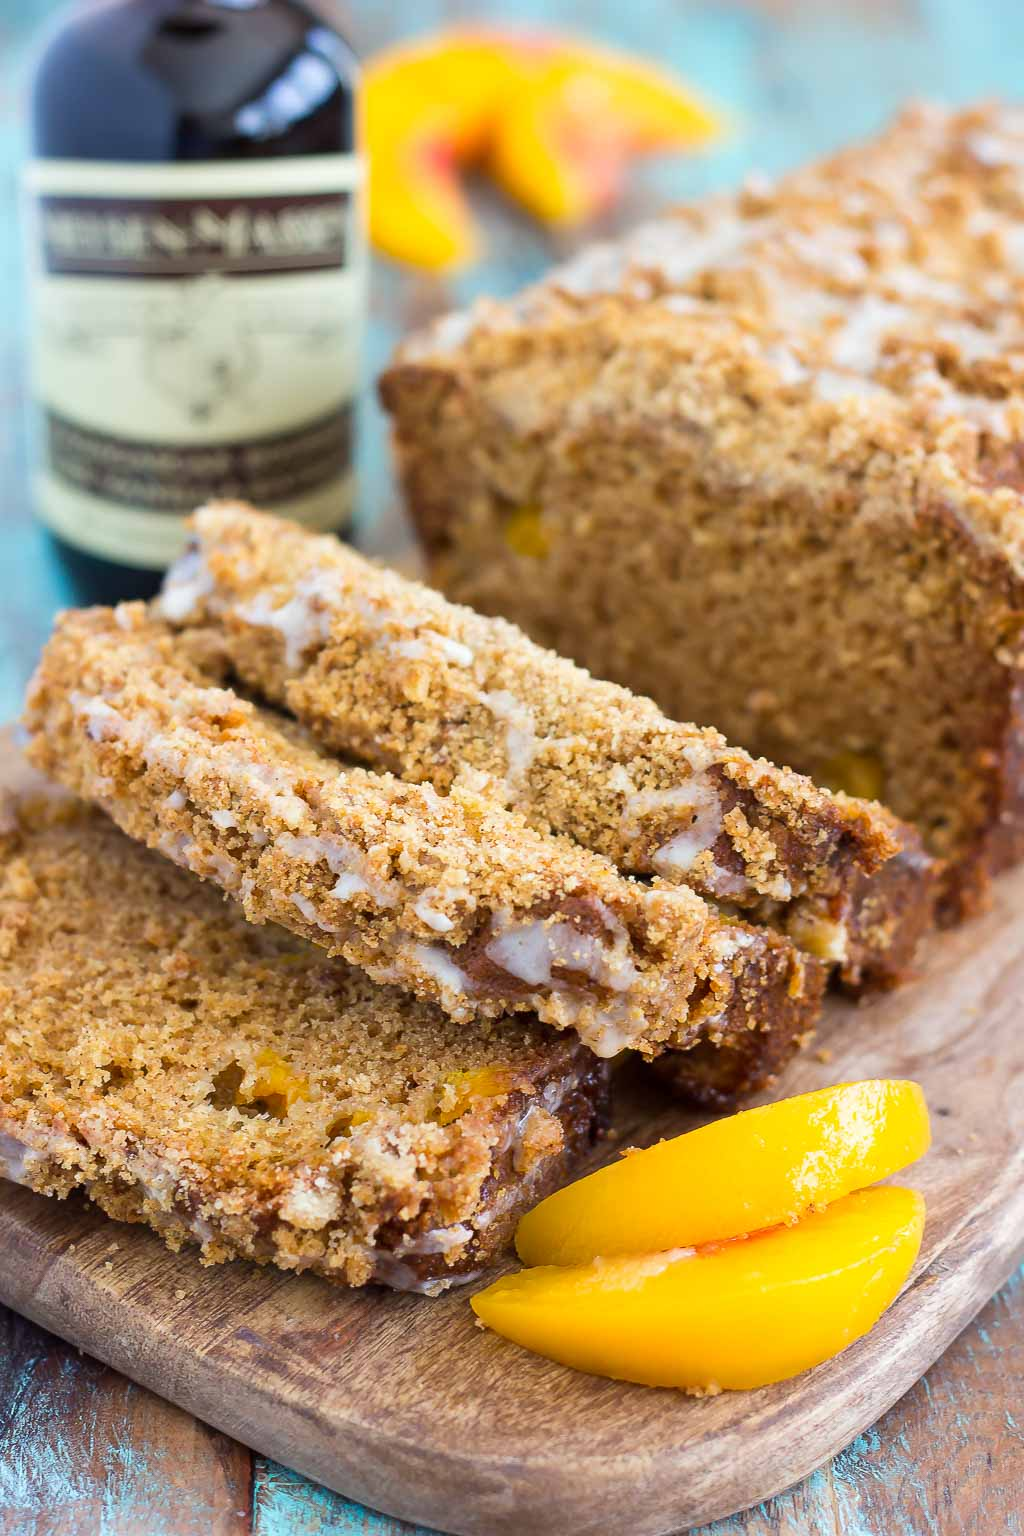 This Glazed Peach Streusel Bread is packed with juicy peaches and topped with a cinnamon crumble and sweet vanilla glaze. You'll fall in love with the soft and fluffy texture and deliciously sweet flavor!